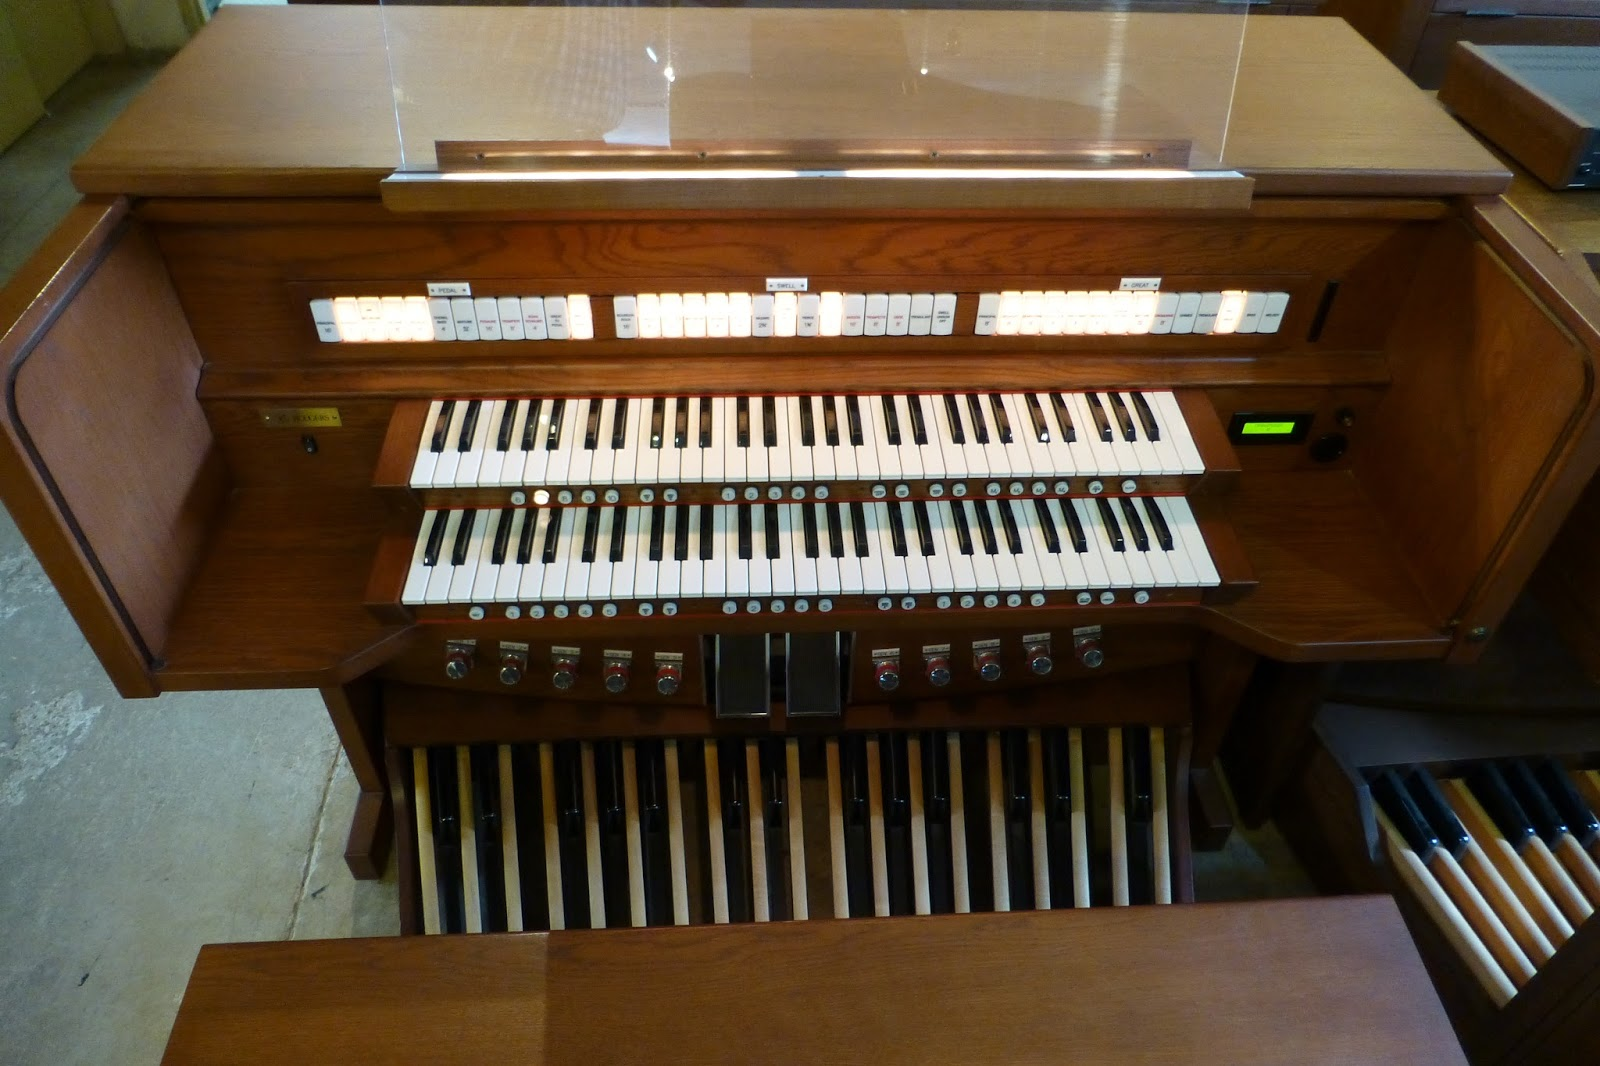 USED/PRE-OWNED RODGERS 790 CHURCH ORGAN